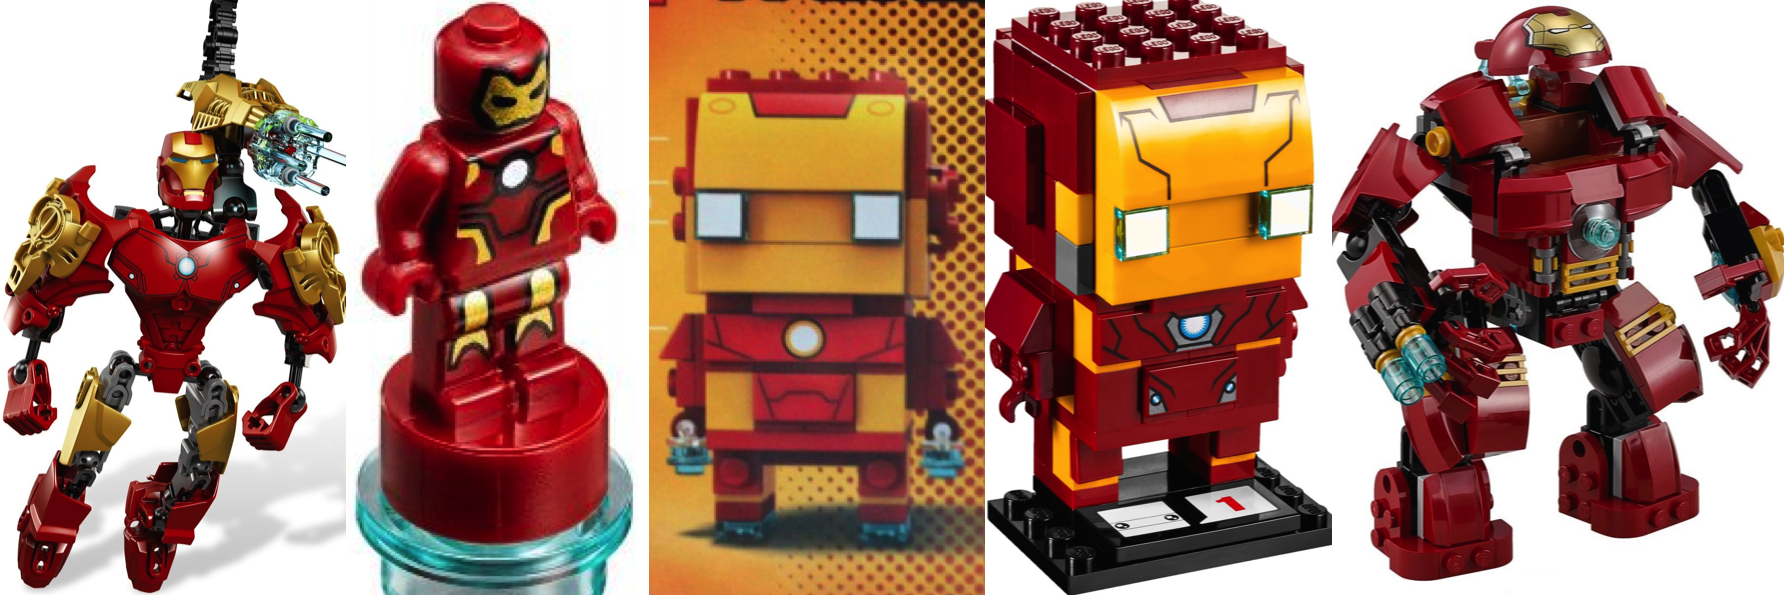 Other iron man sets.png